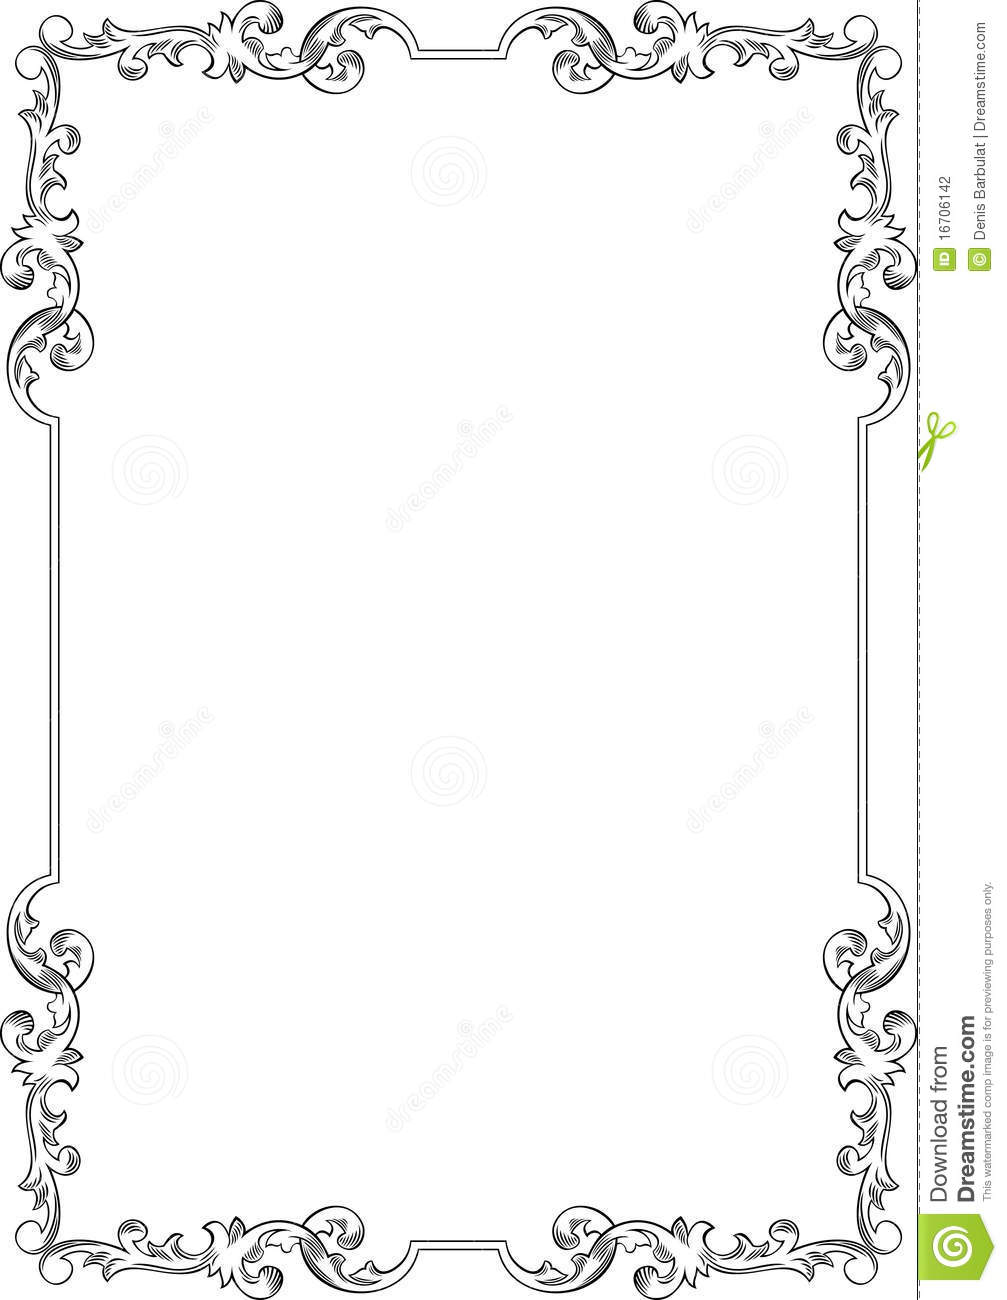 Go Back > Images For > Elegant Frame Clip Art